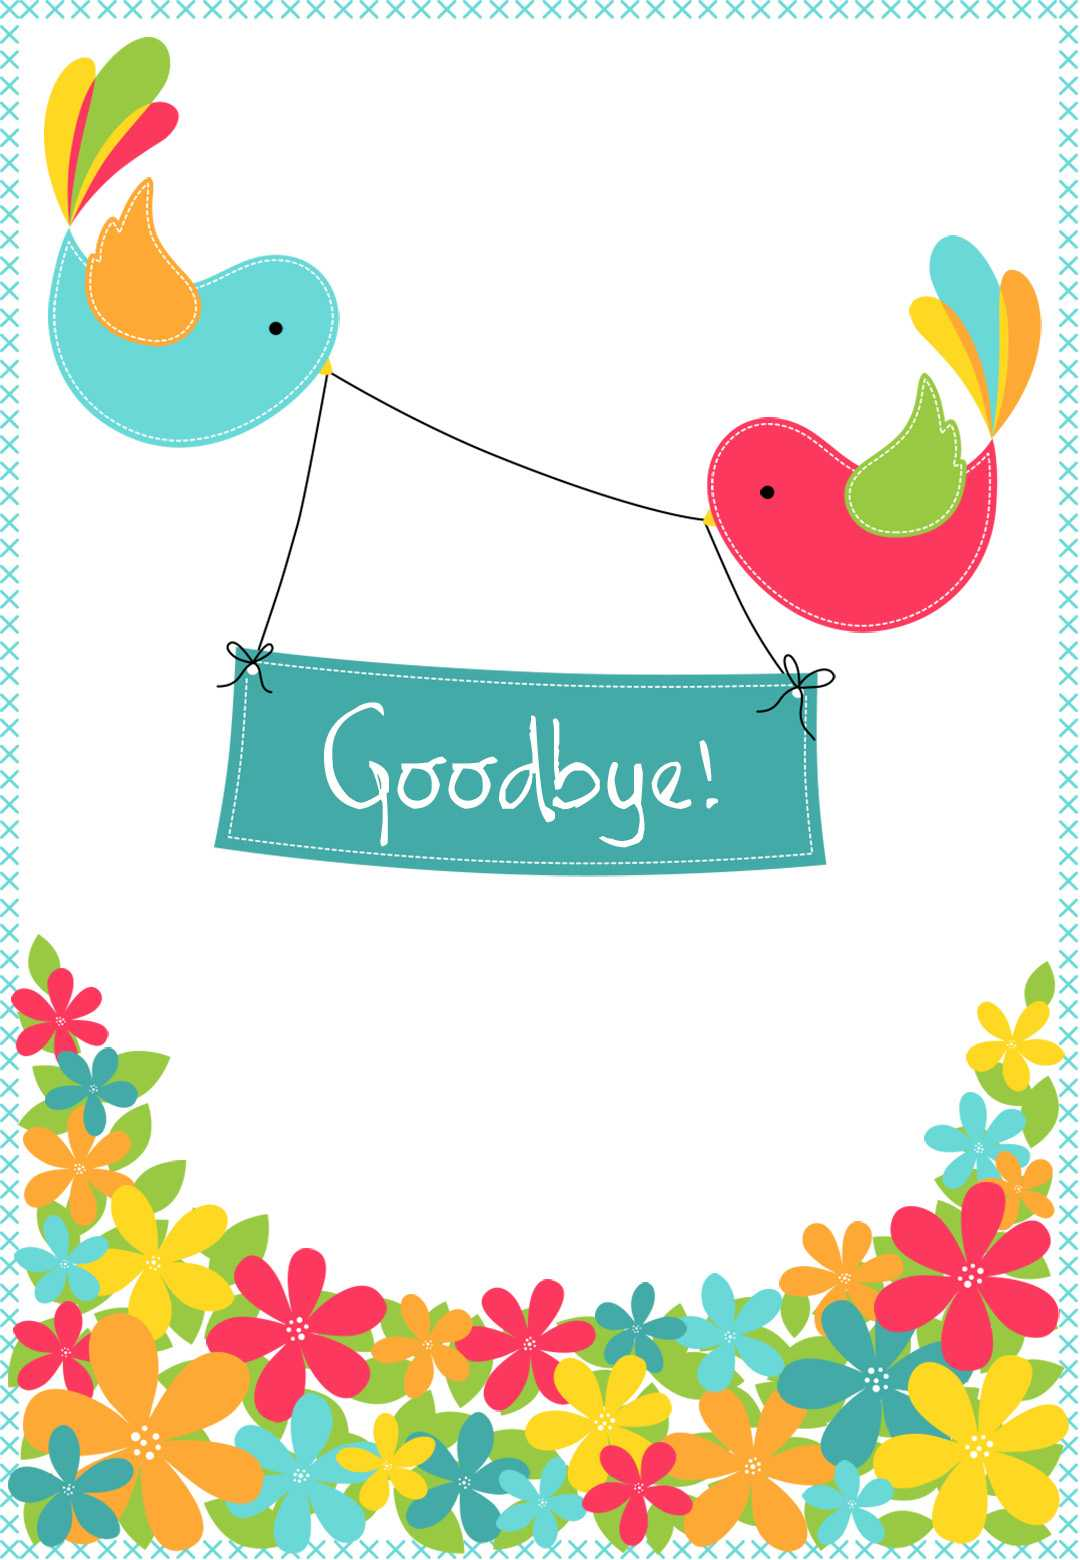 Goodbye From Your Colleagues - Good Luck Card (Free Intended For Goodbye Card Template